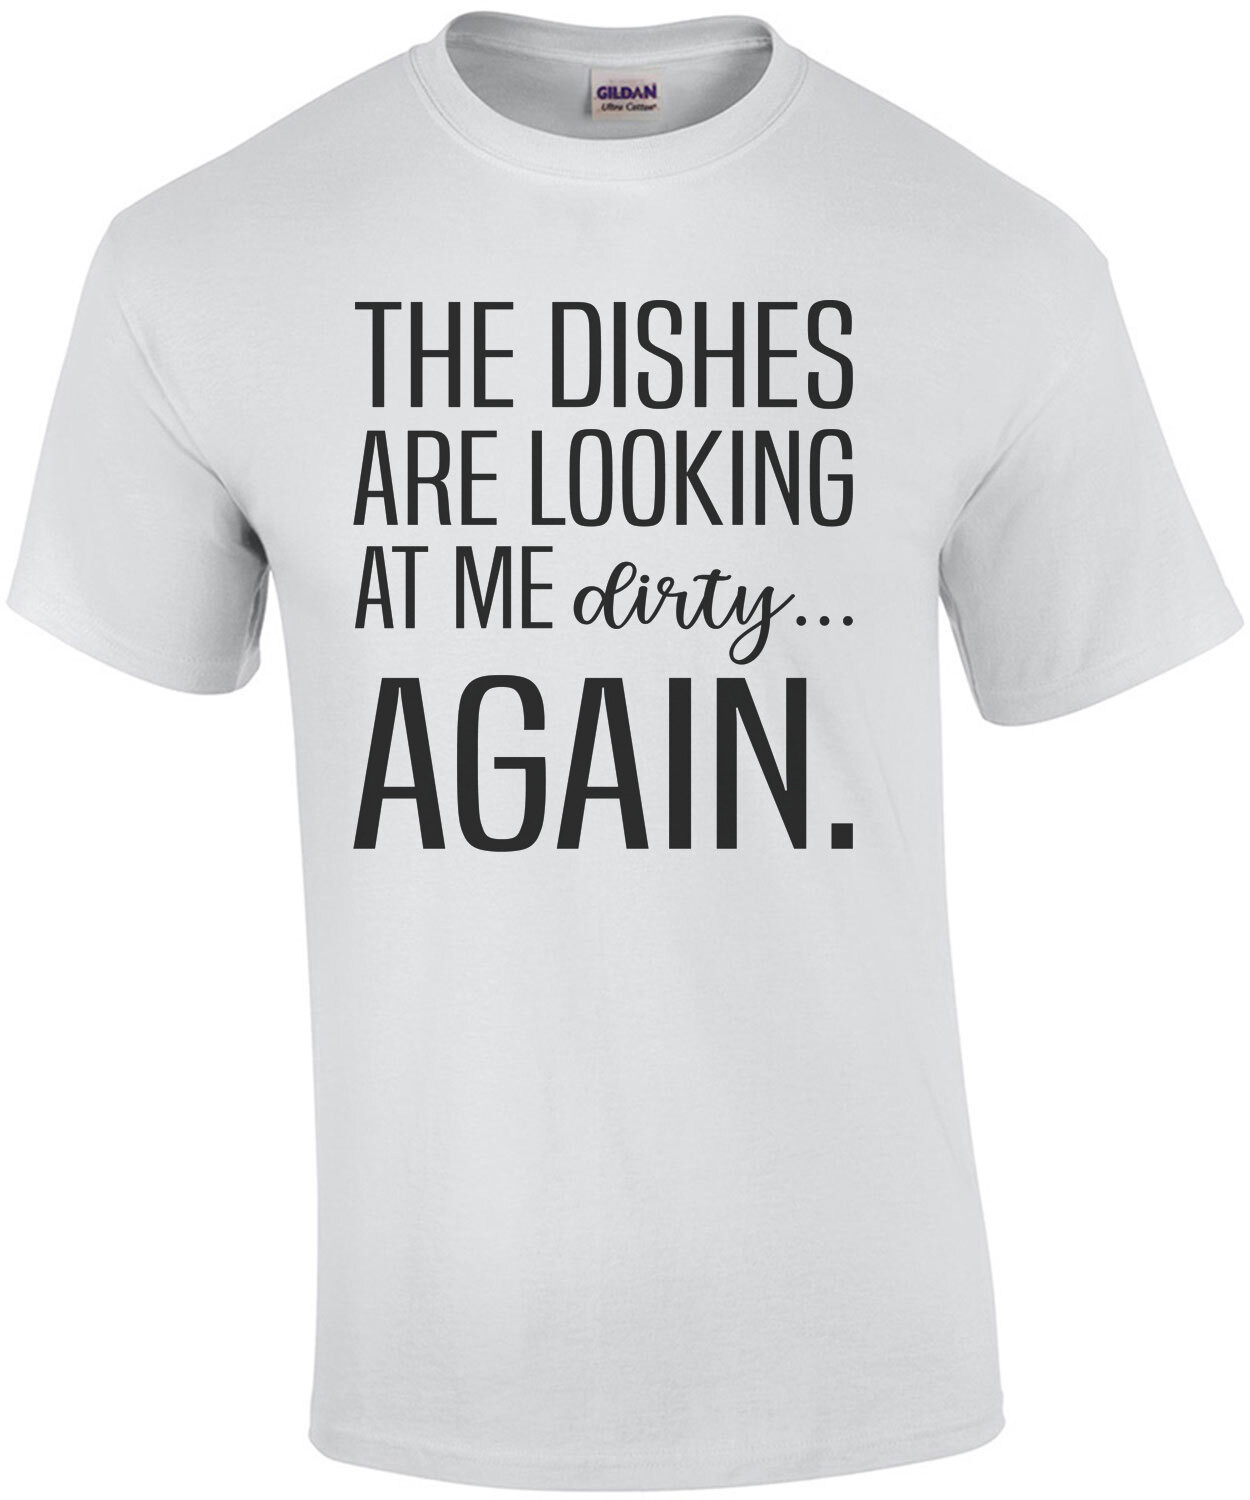 The dishes are looking at me dirty again. Funny T-Shirt